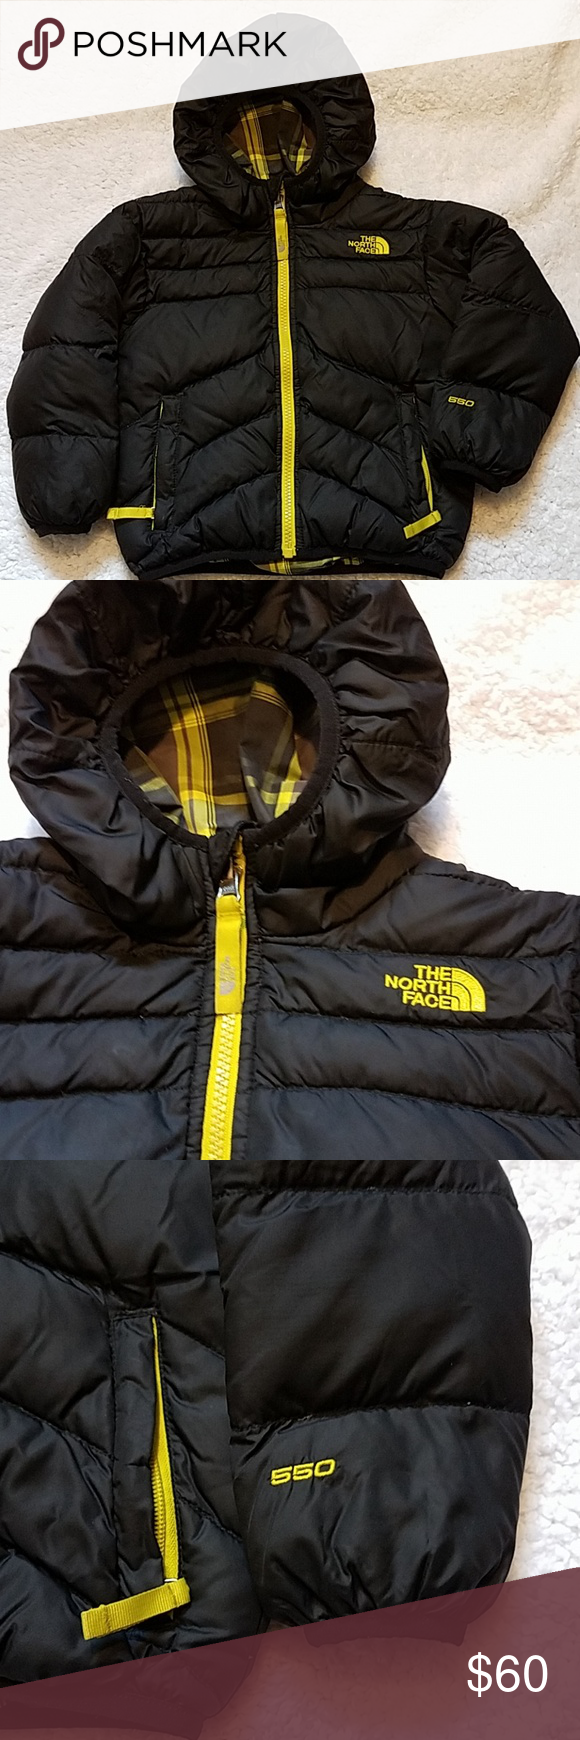 Hp The North Face Toddler Reversible Jacket 3t Reversible Jackets Jackets North Face Jacket [ 1740 x 580 Pixel ]